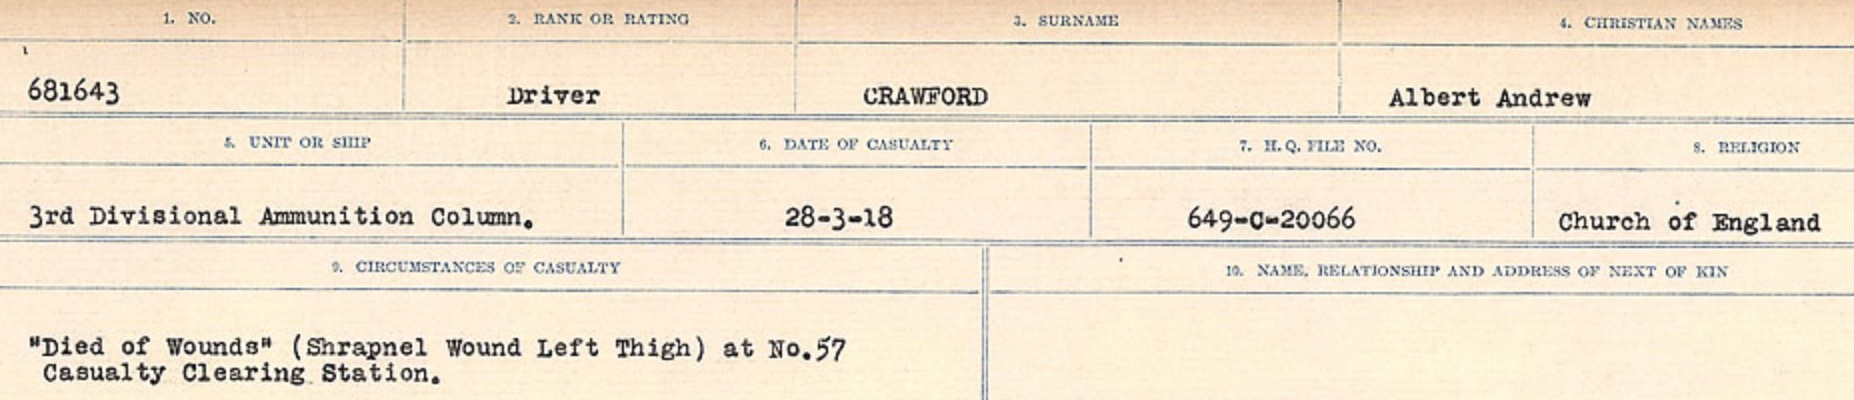 Circumstances of death registers– Source: Library and Archives Canada. CIRCUMSTANCES OF DEATH REGISTERS, FIRST WORLD WAR Surnames: CRABB TO CROSSLAND Microform Sequence 24; Volume Number 31829_B016733. Reference RG150, 1992-93/314, 168. Page 299 of 788.